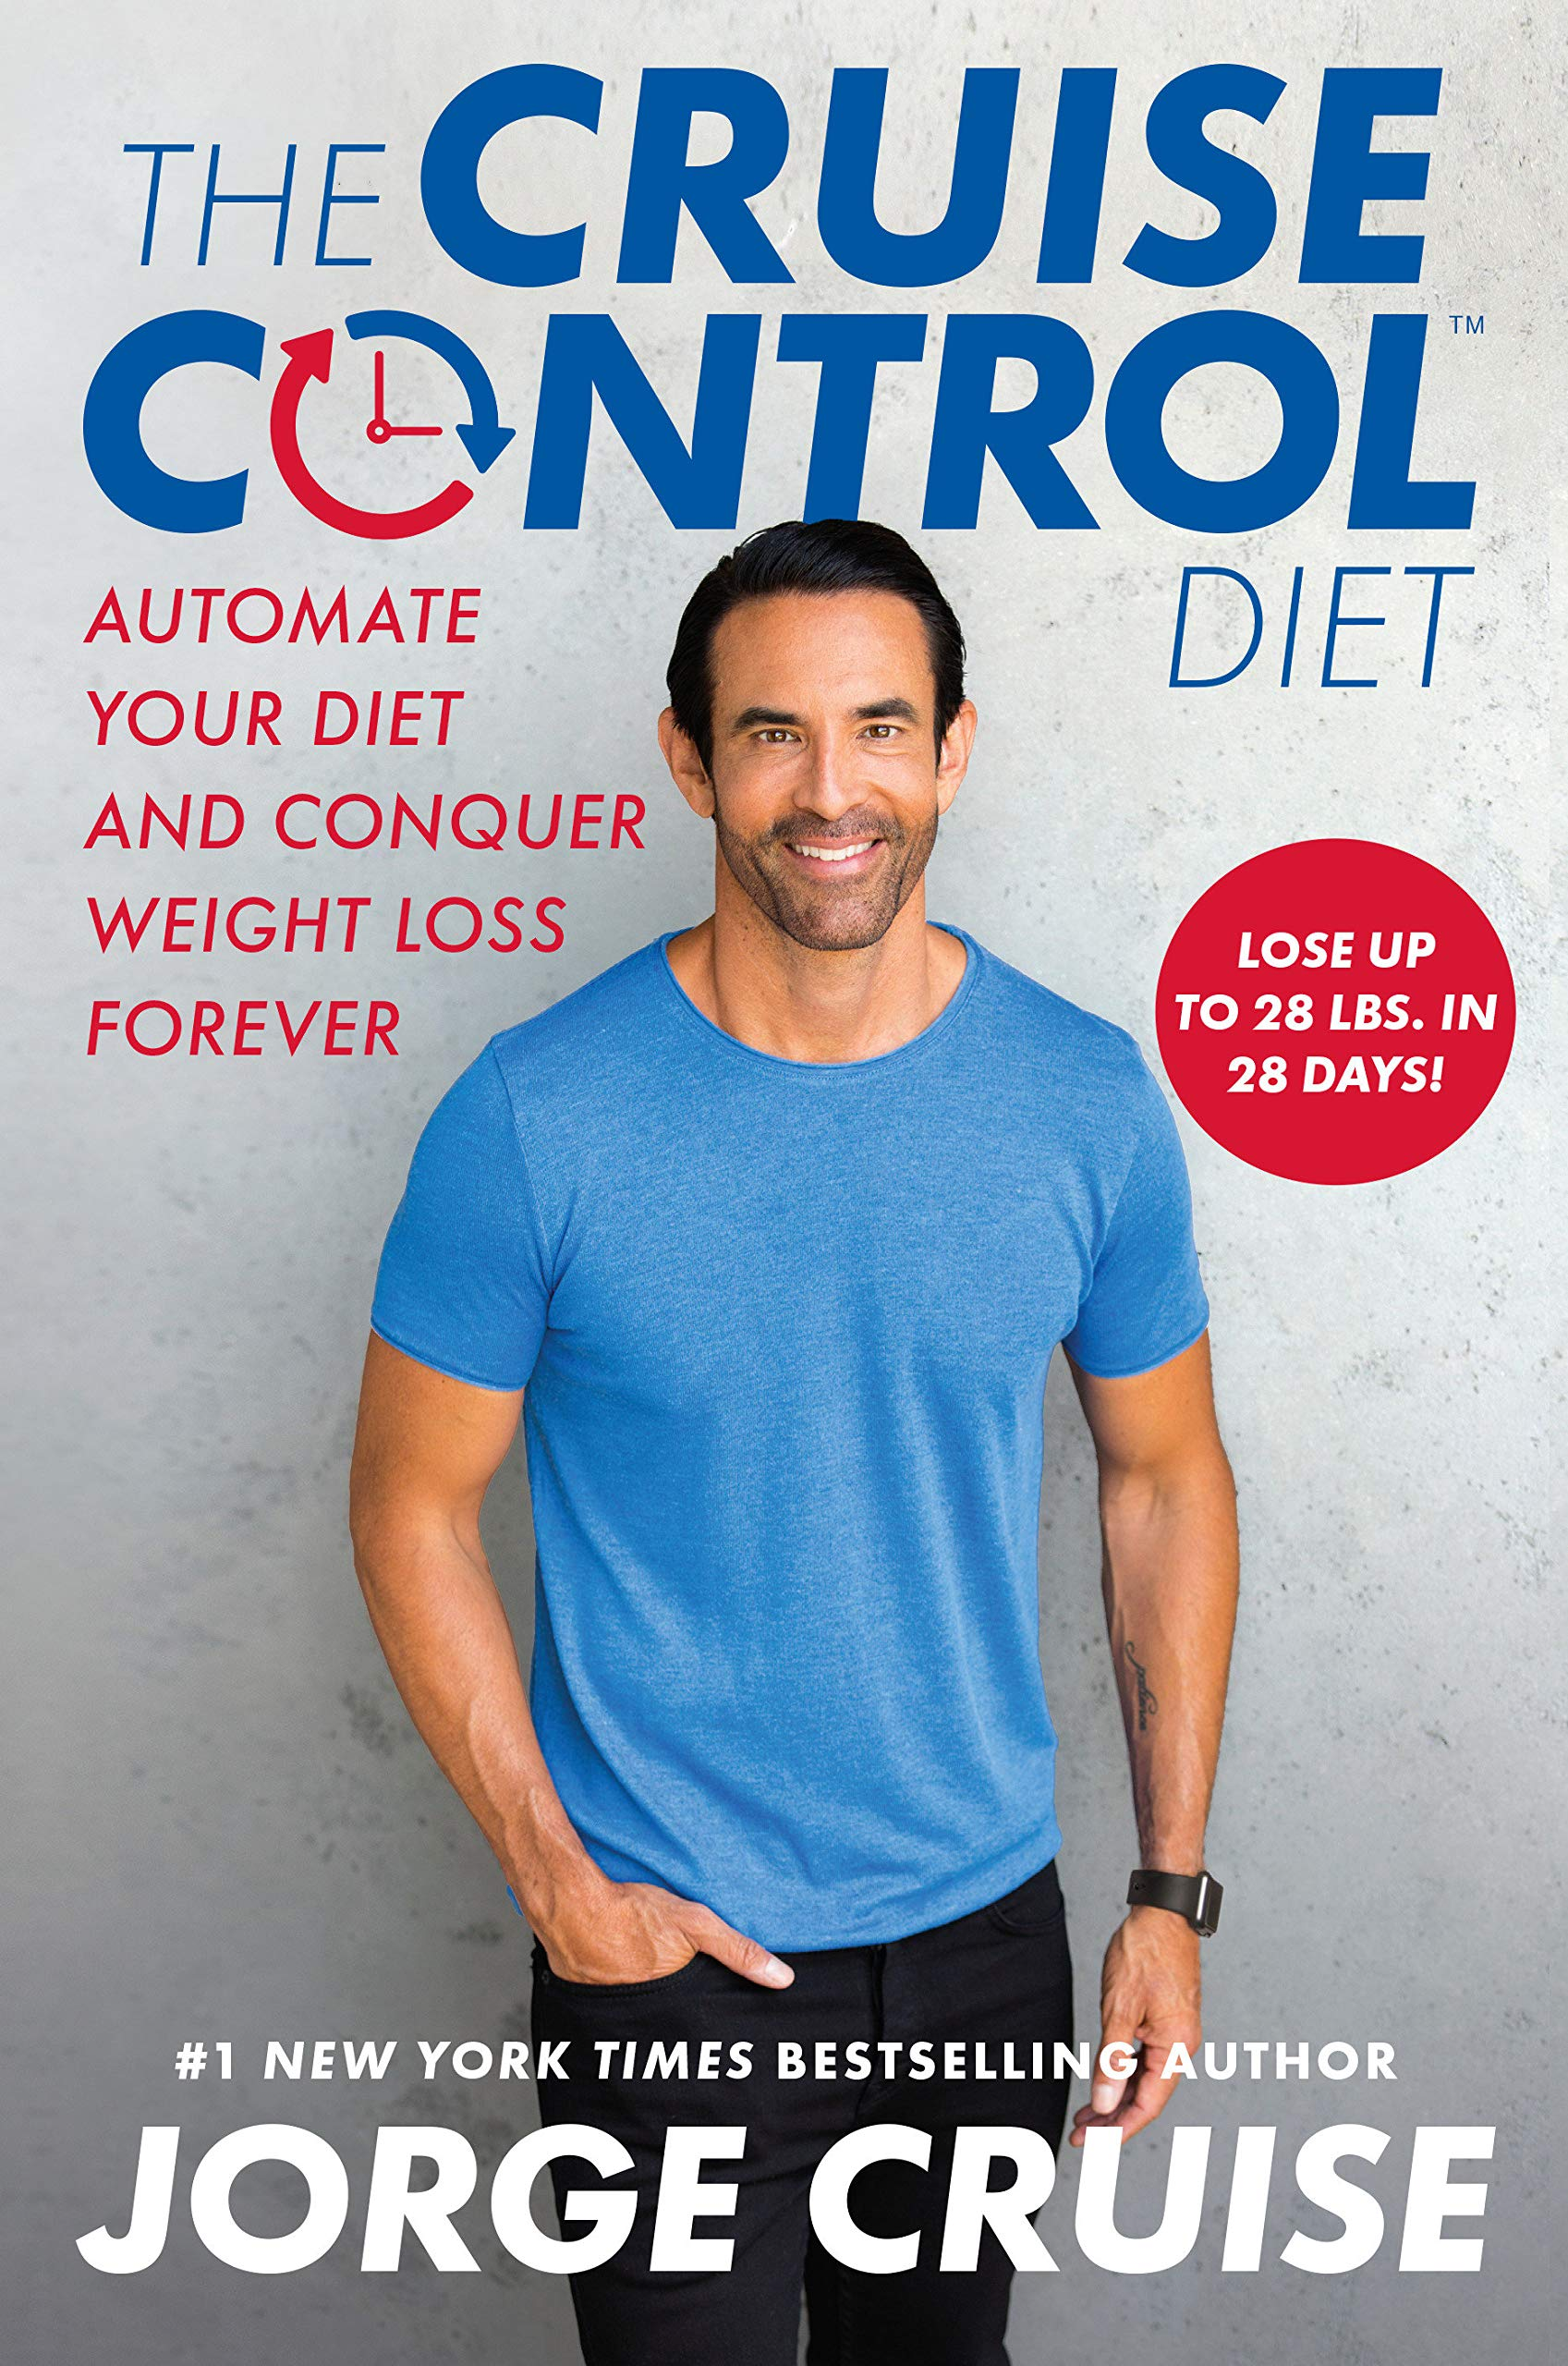 Cruise Control Diet Automate Conquer